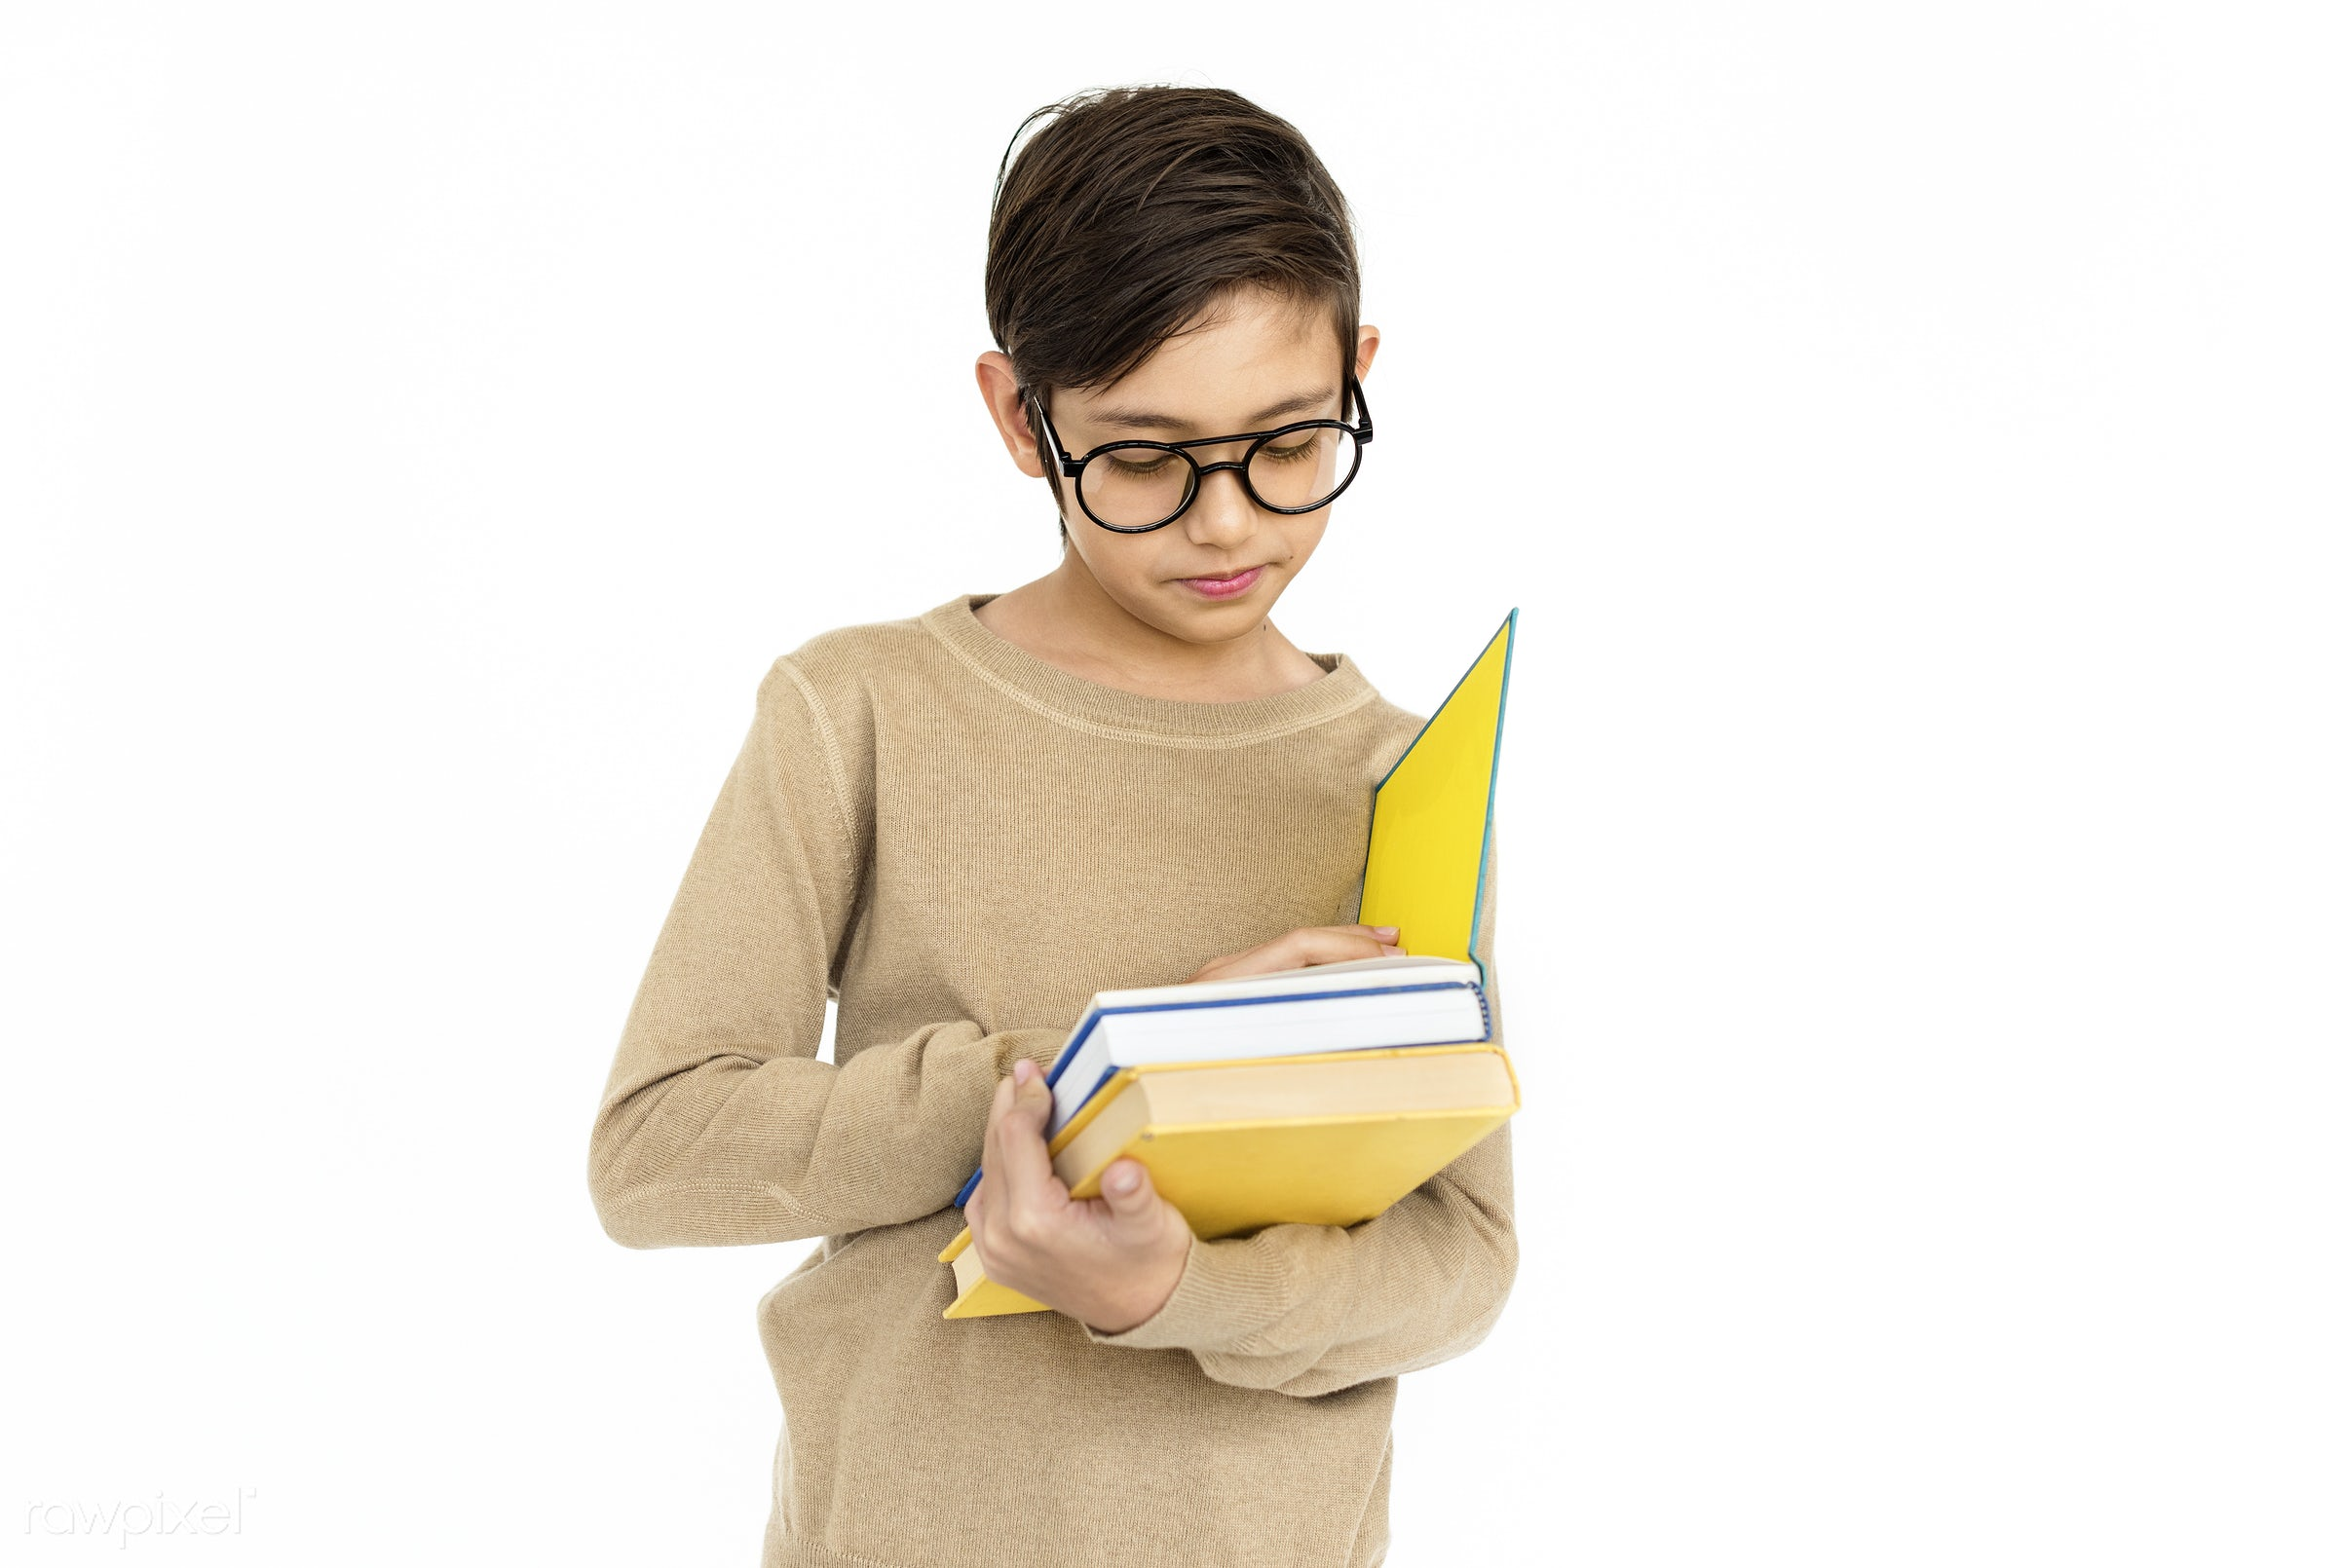 studio, expression, reading, person, people, kid, student, childhood, smile, cheerful, smiling, isolated, hobby, white,...